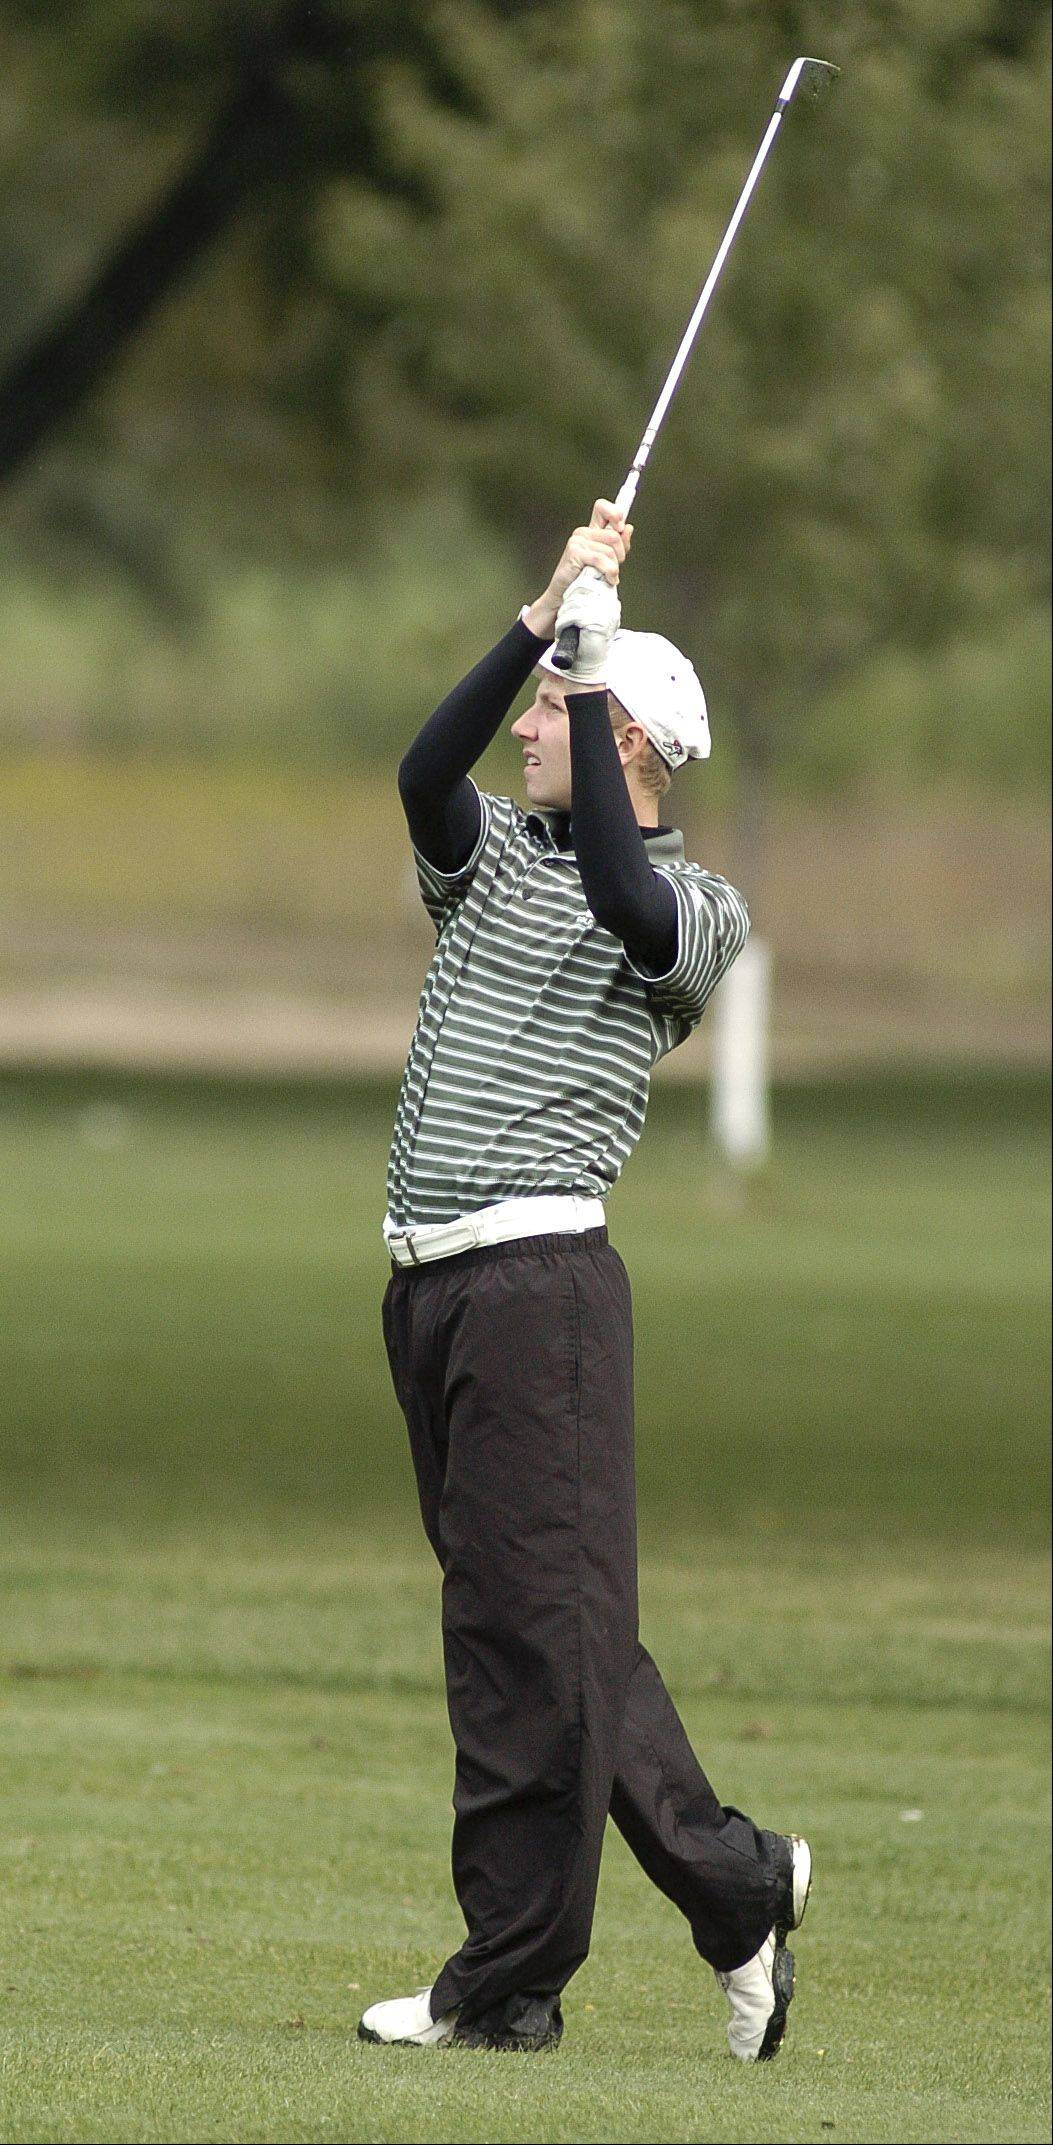 Waubonsie Valley�s Alec Meyer on the fairway of the seventeenth hole at the Upstate Eight Conference meet on Thursday, September 29.